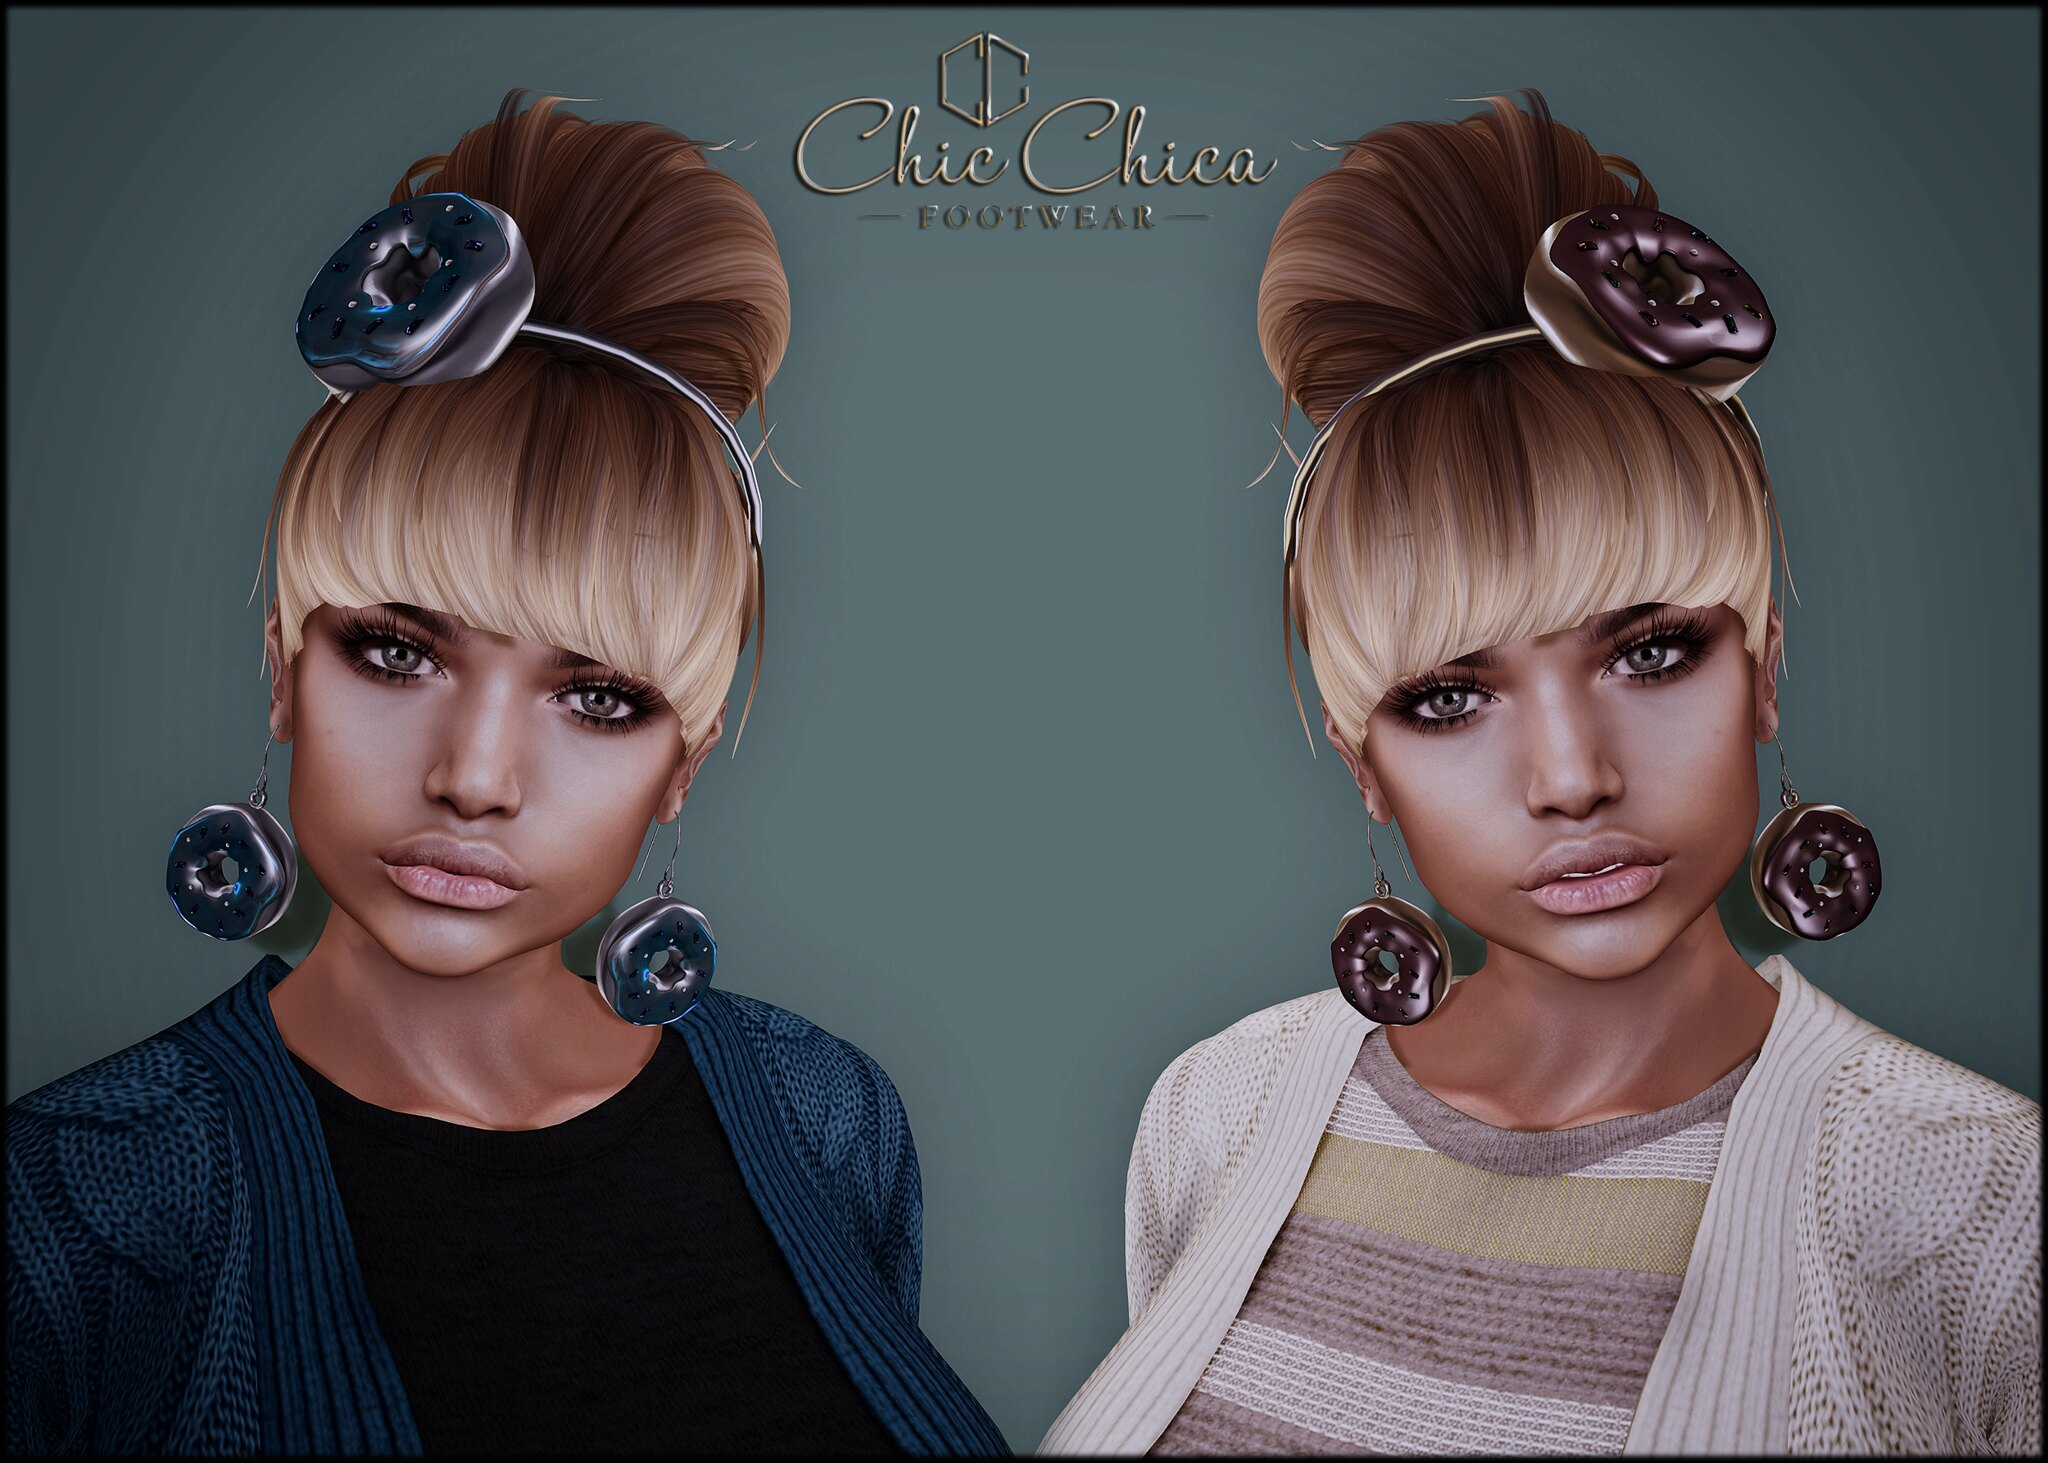 Donut headbands and earrings by ChicChica OUT @ The Project Se7en